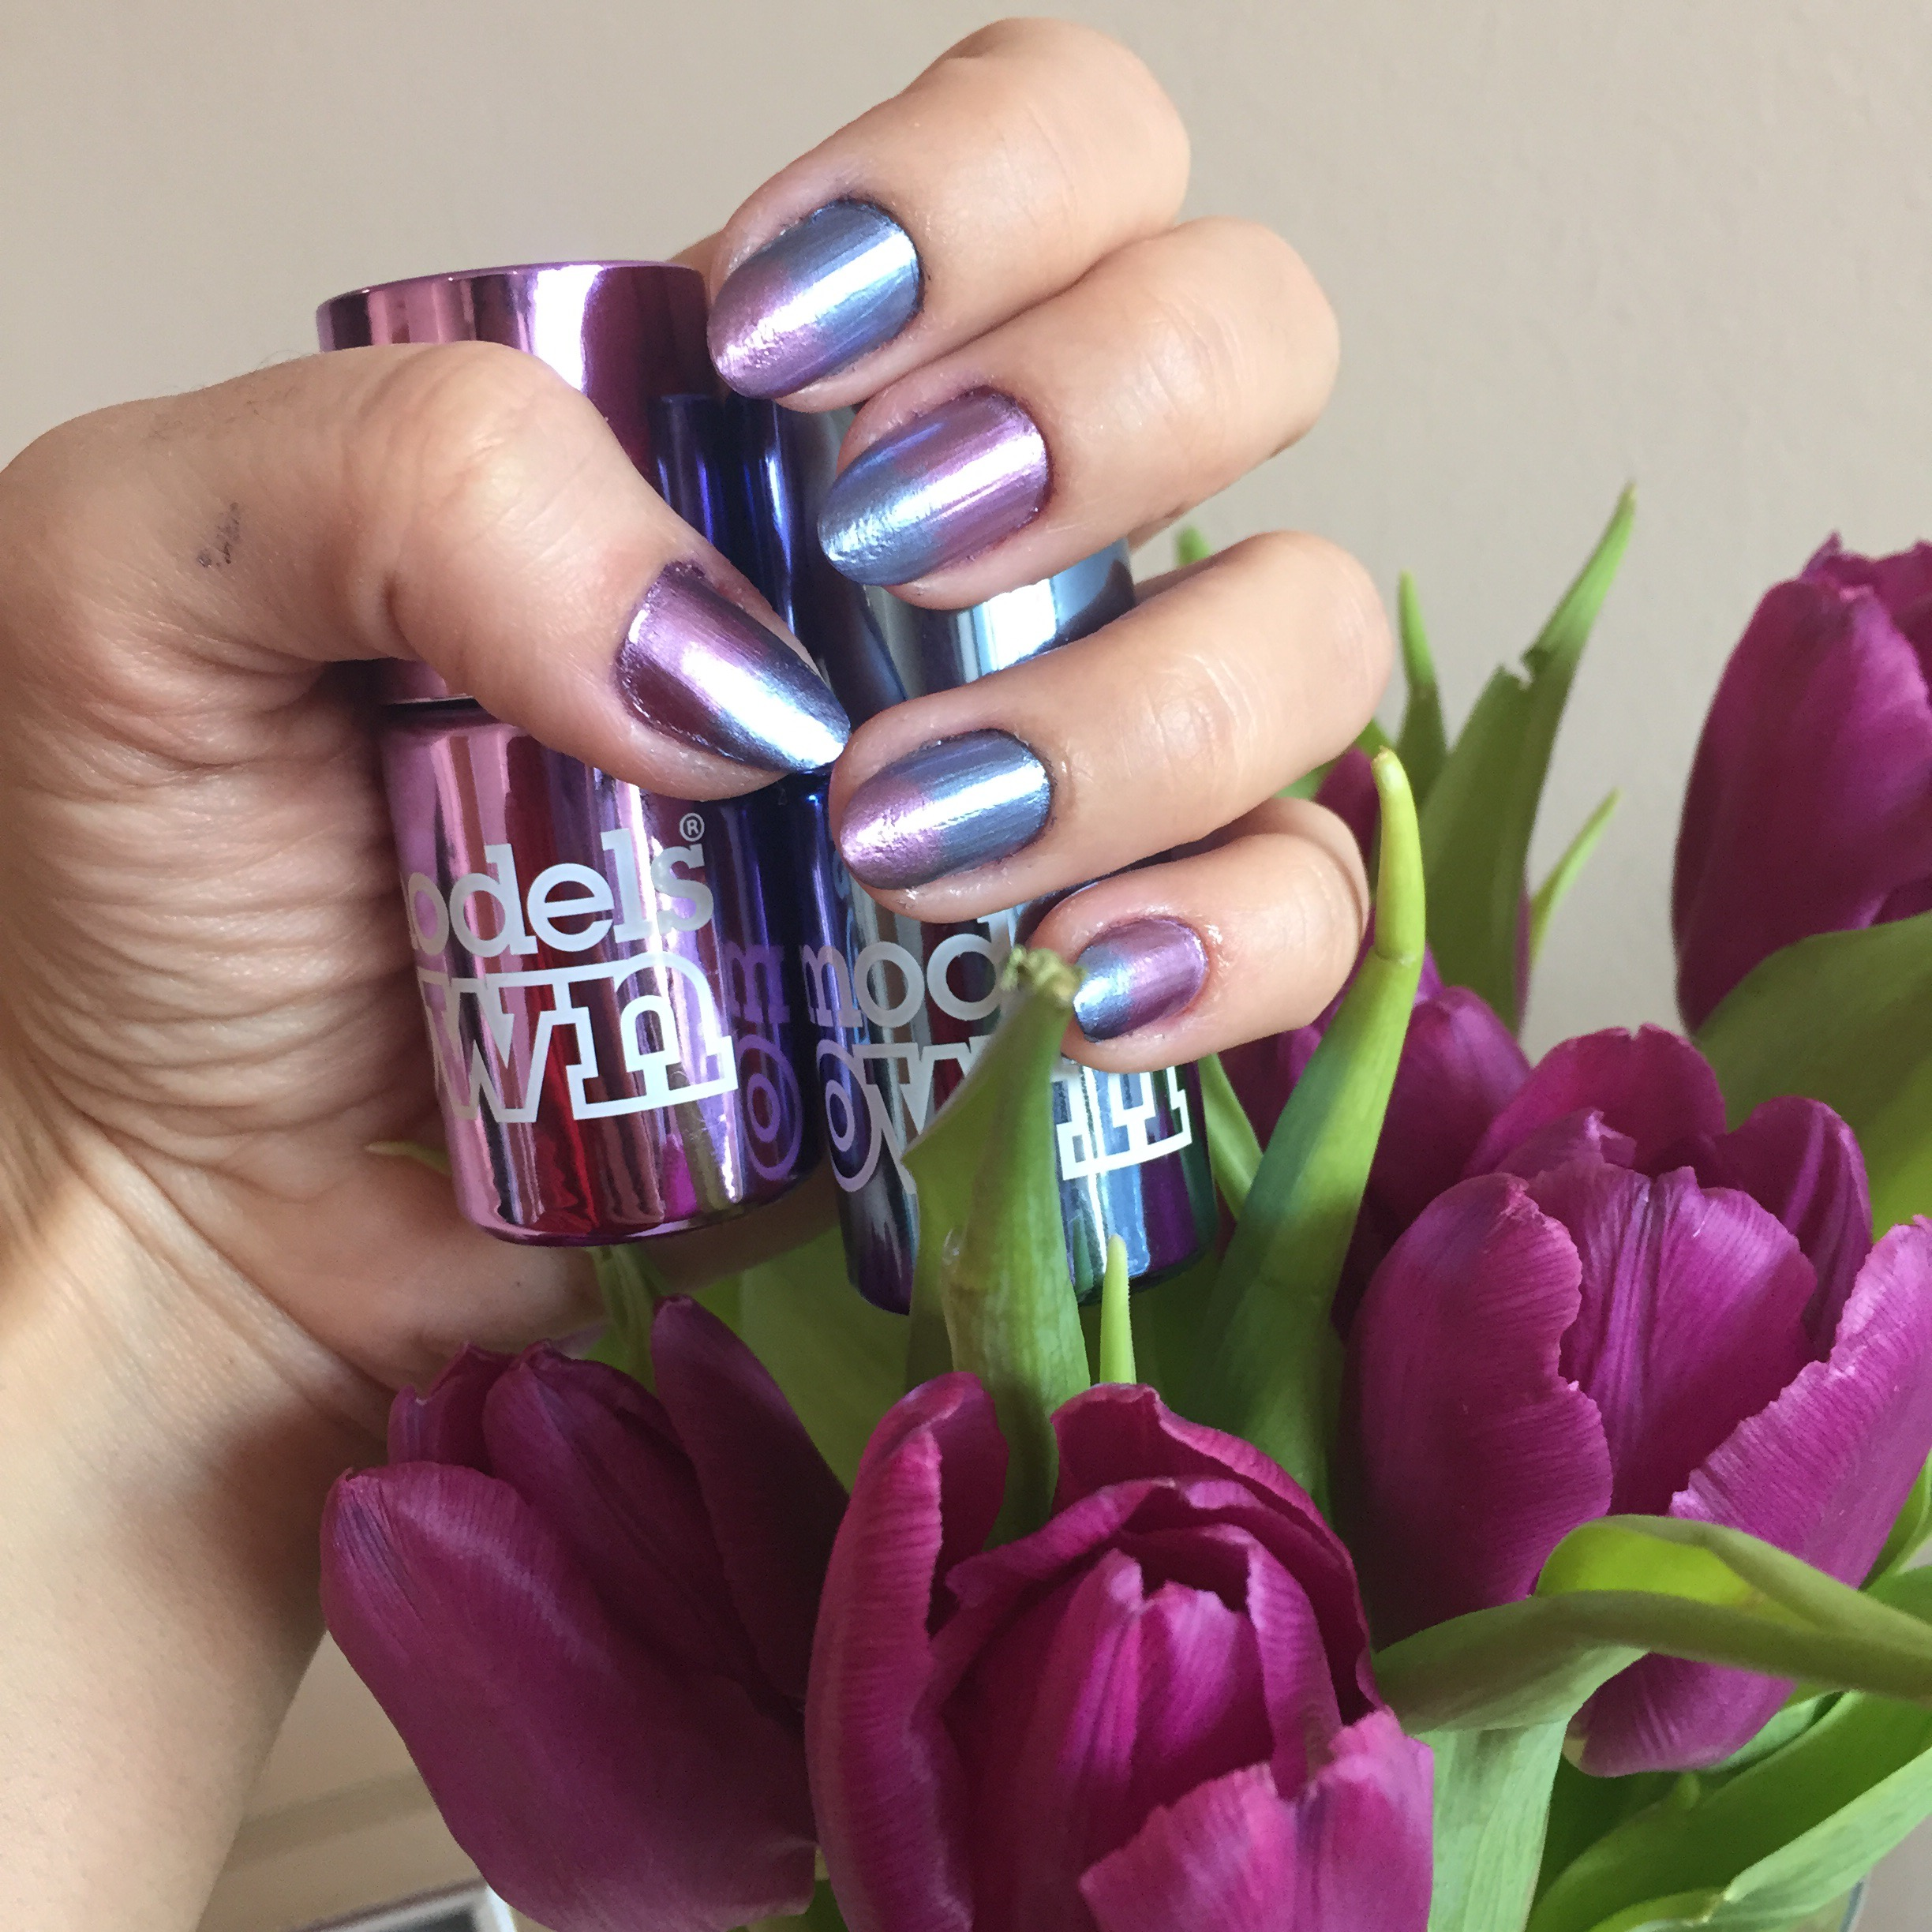 models own chrome nail polish | So Many Lovely Things